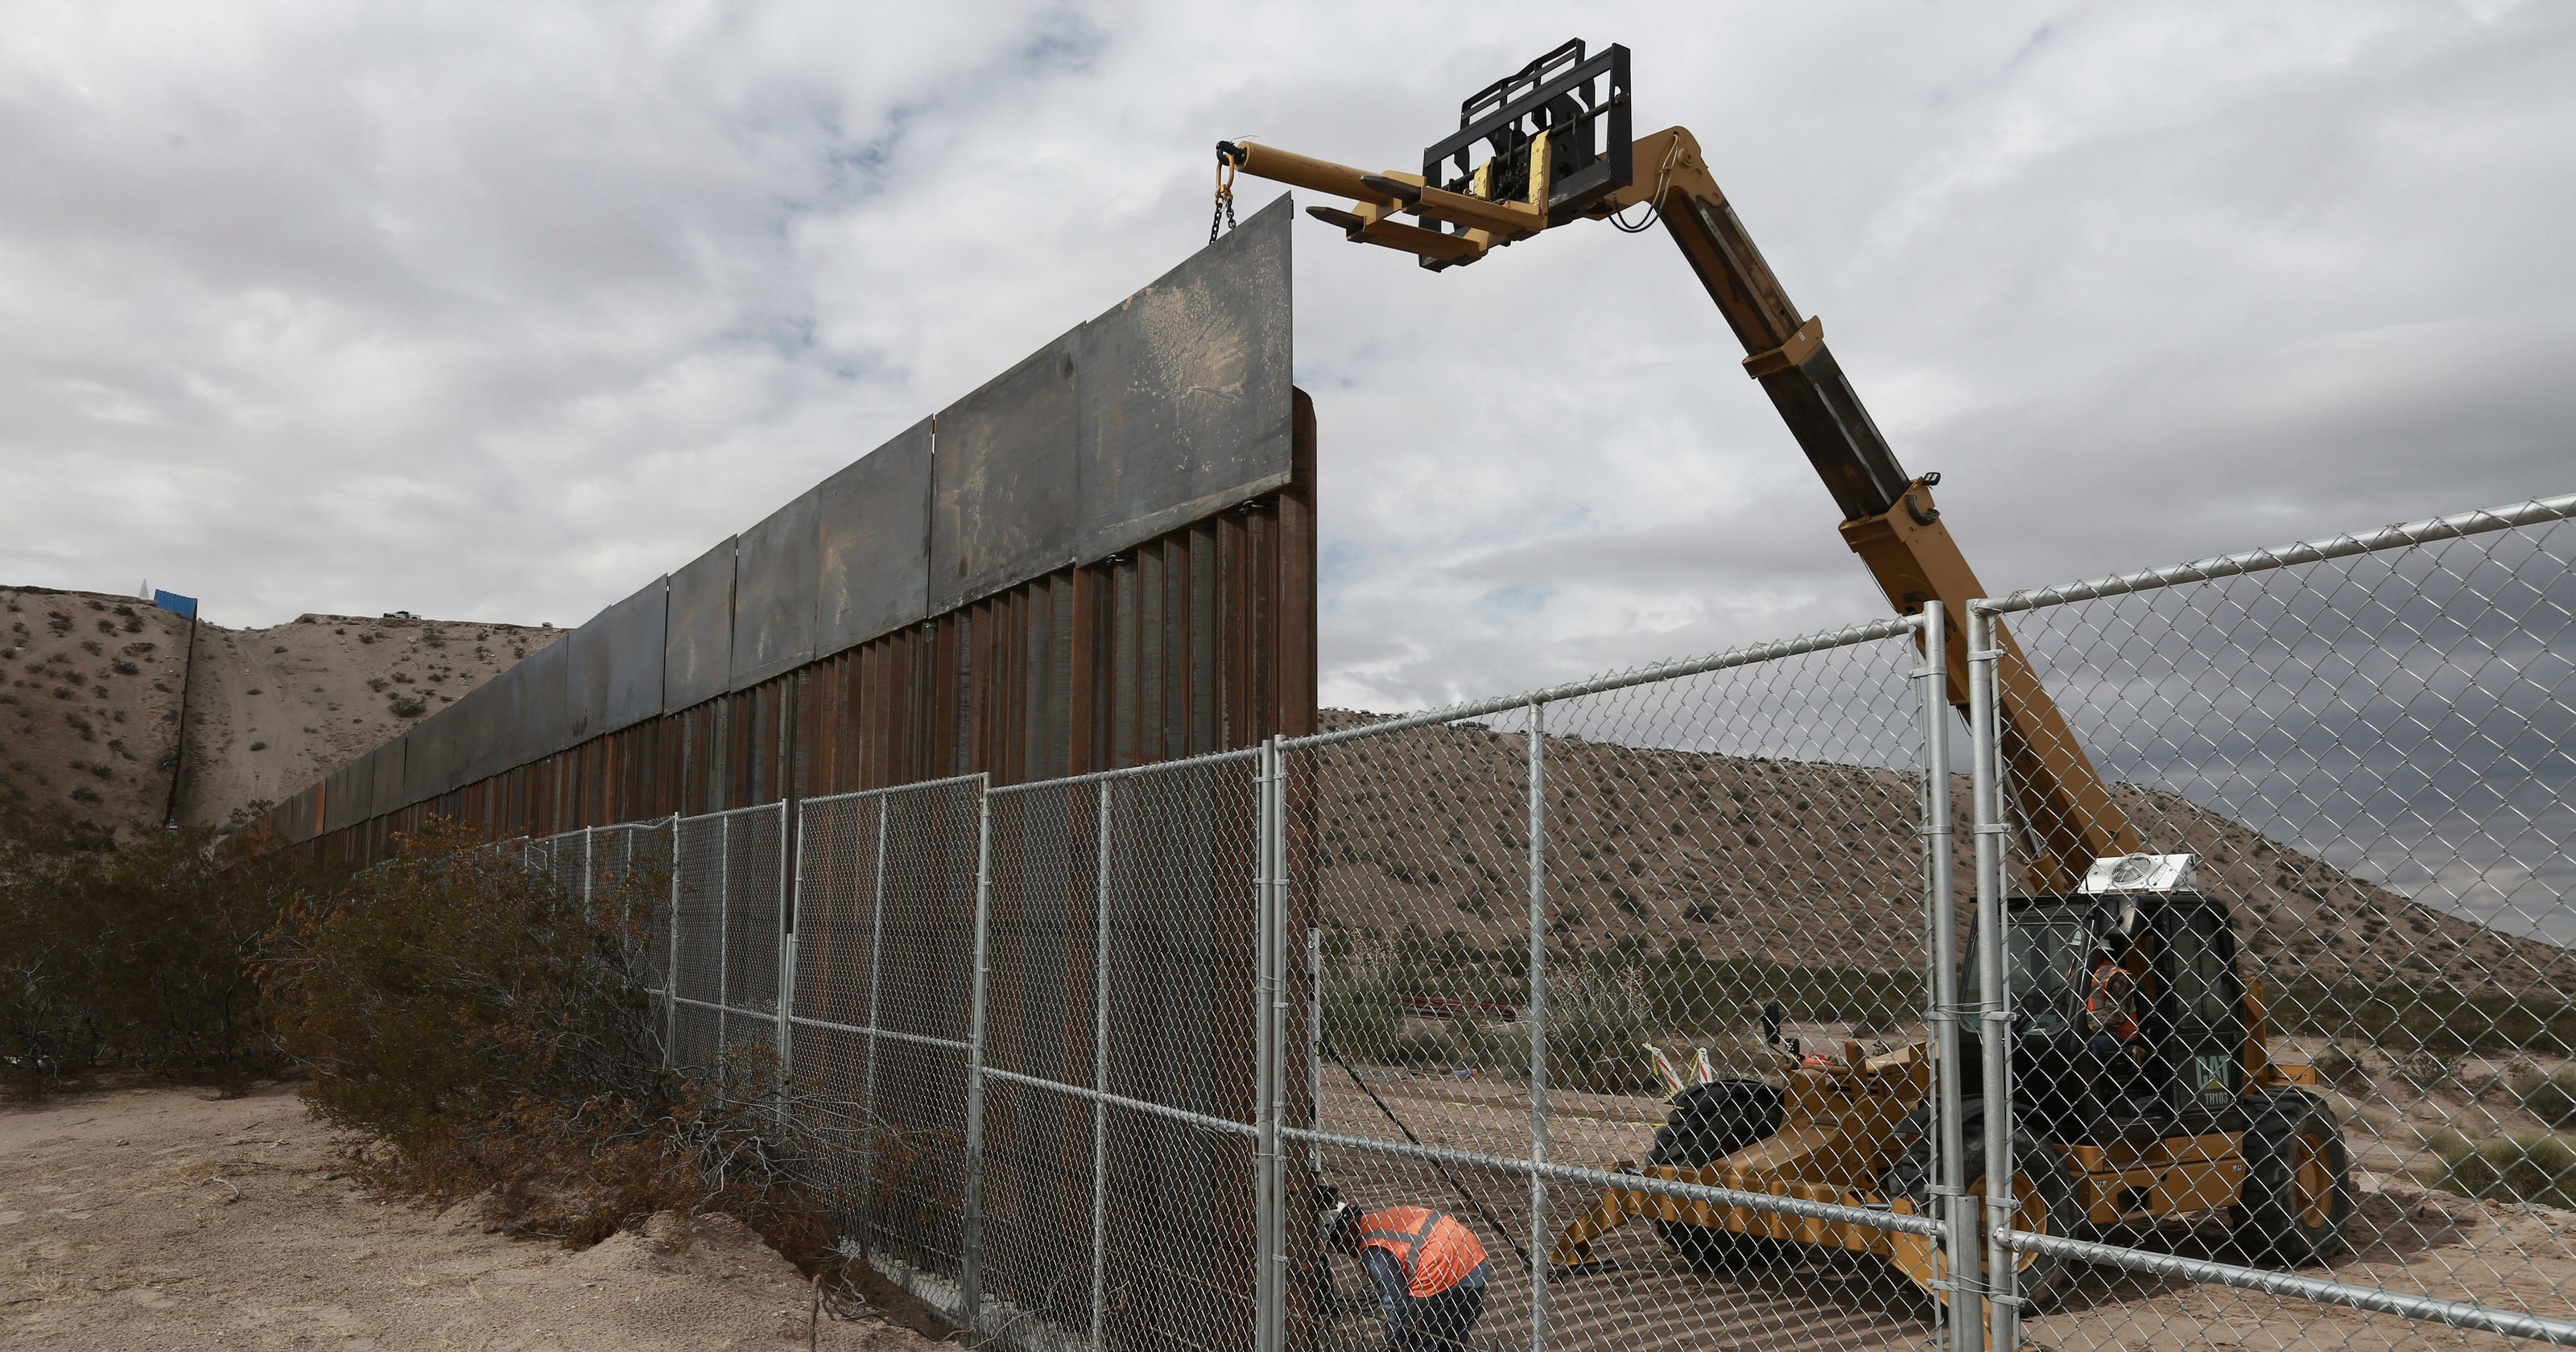 How To Get Job Building Trump Wall